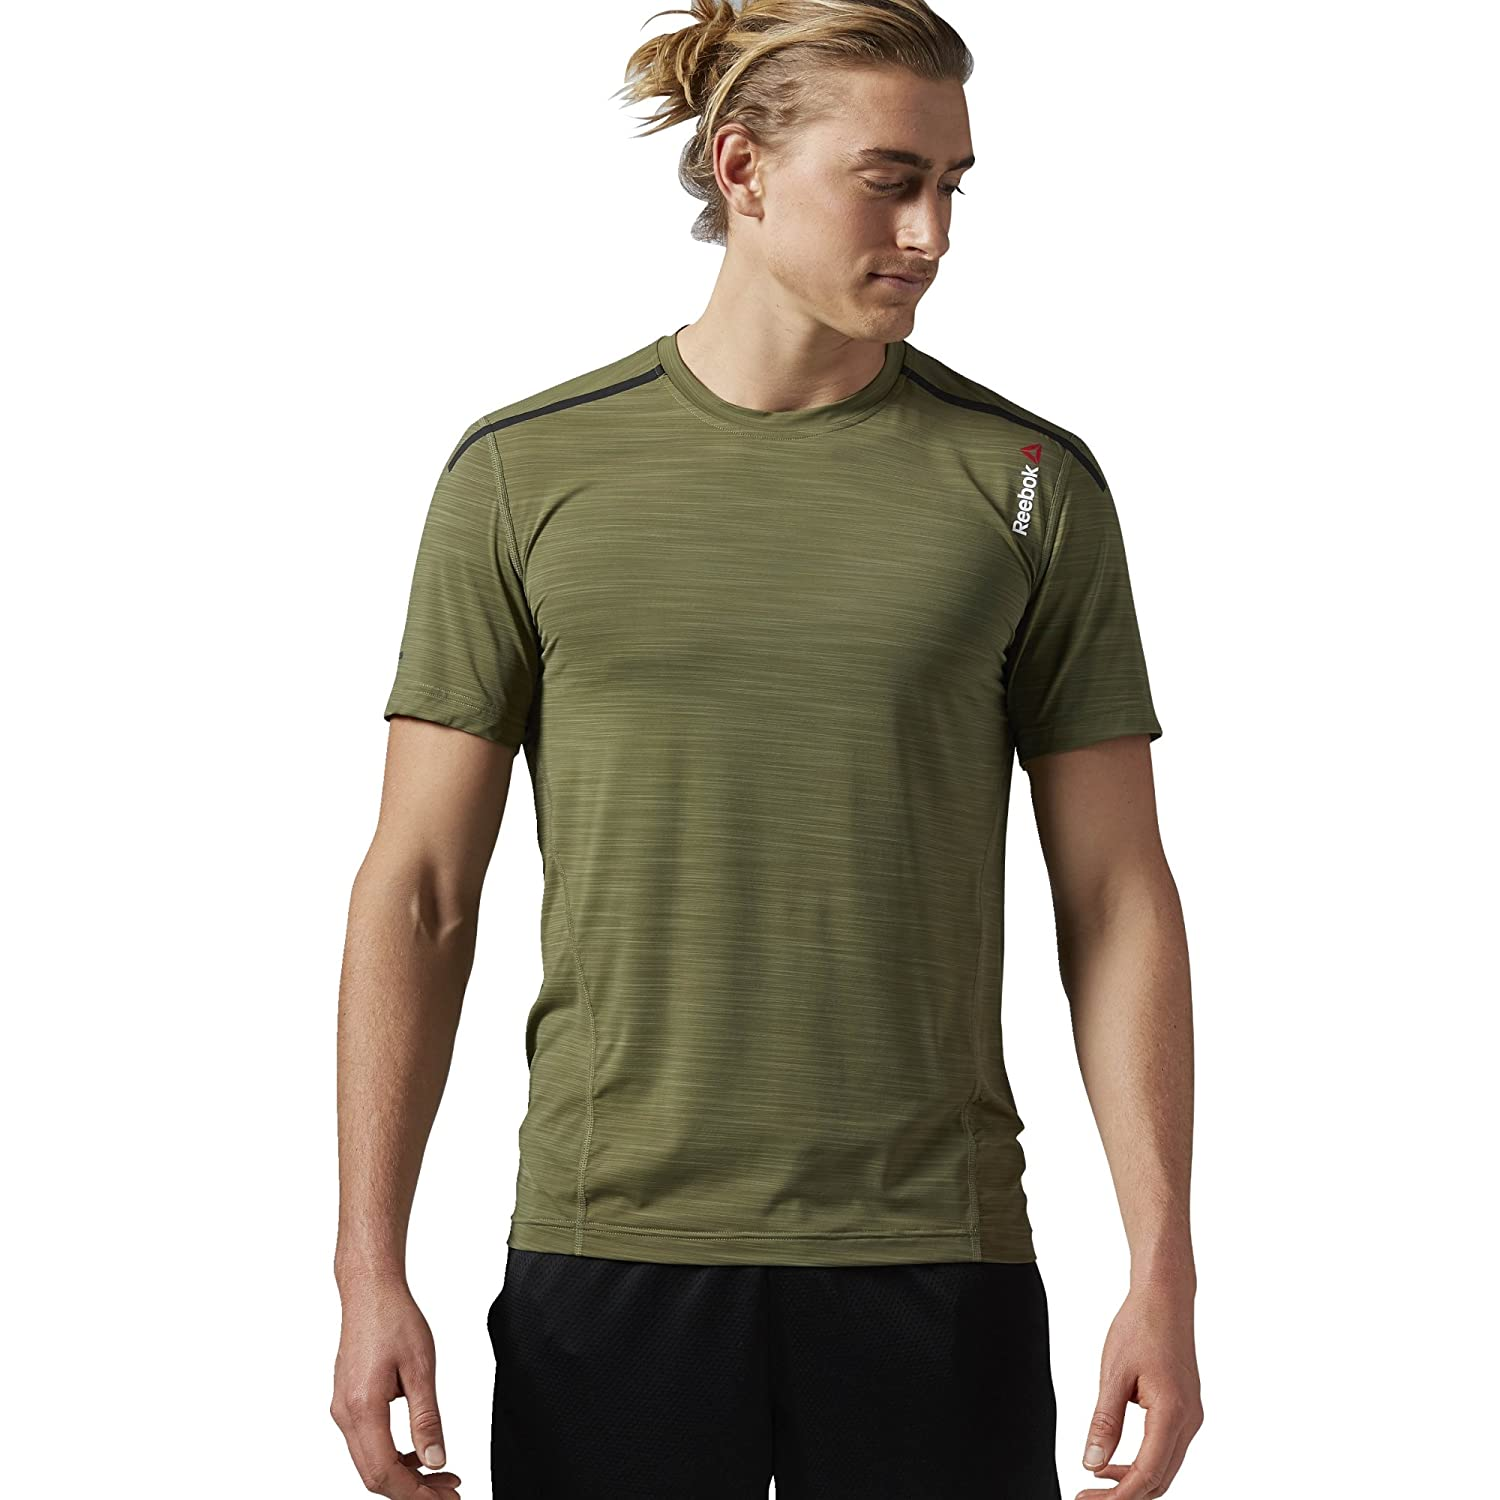 Reebok Men's One Series Activchill Bonded Short Sleeve Top Canopy Green Reebok Performance Canada Apparel Child Code AX9395